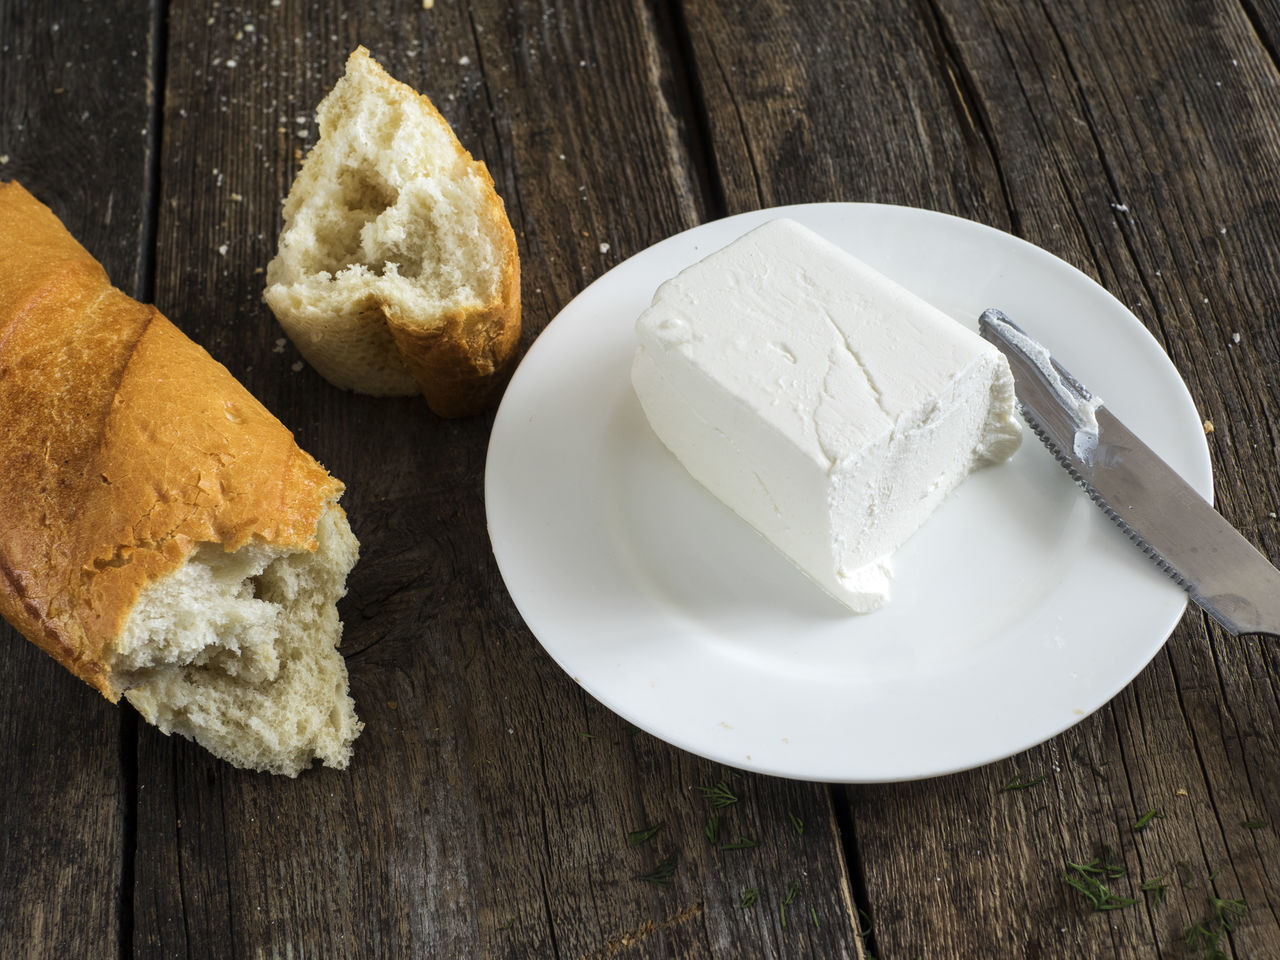 ingredients for cooking: bread and feta on an old wooden weathered table Bread Cheese Close-up Cooking Day Feta Food Food And Drink French Food Freshness Indoors  Ingredients No People Old Plate Sweet Food Table Weathered Wood - Material Wooden